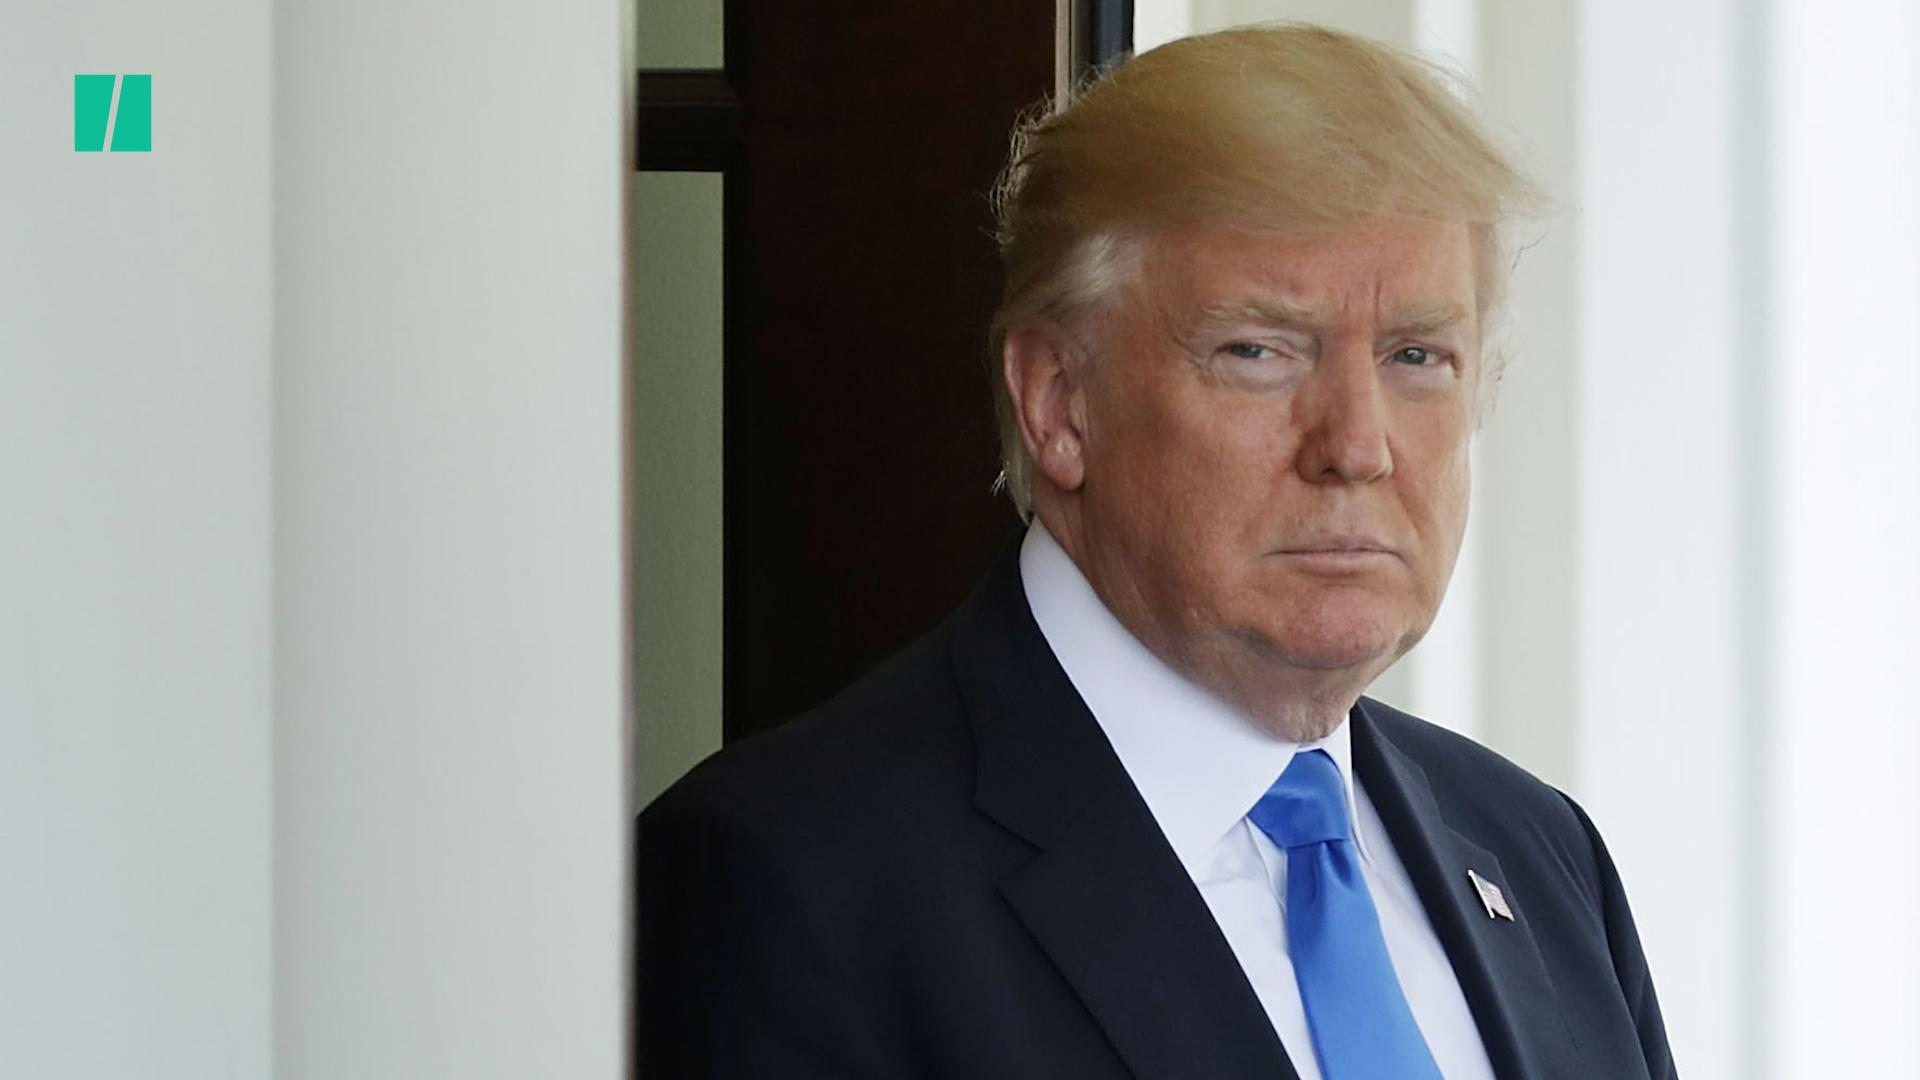 Trump Pushes Debunked Conspiracy Theory About Whistleblower Reports